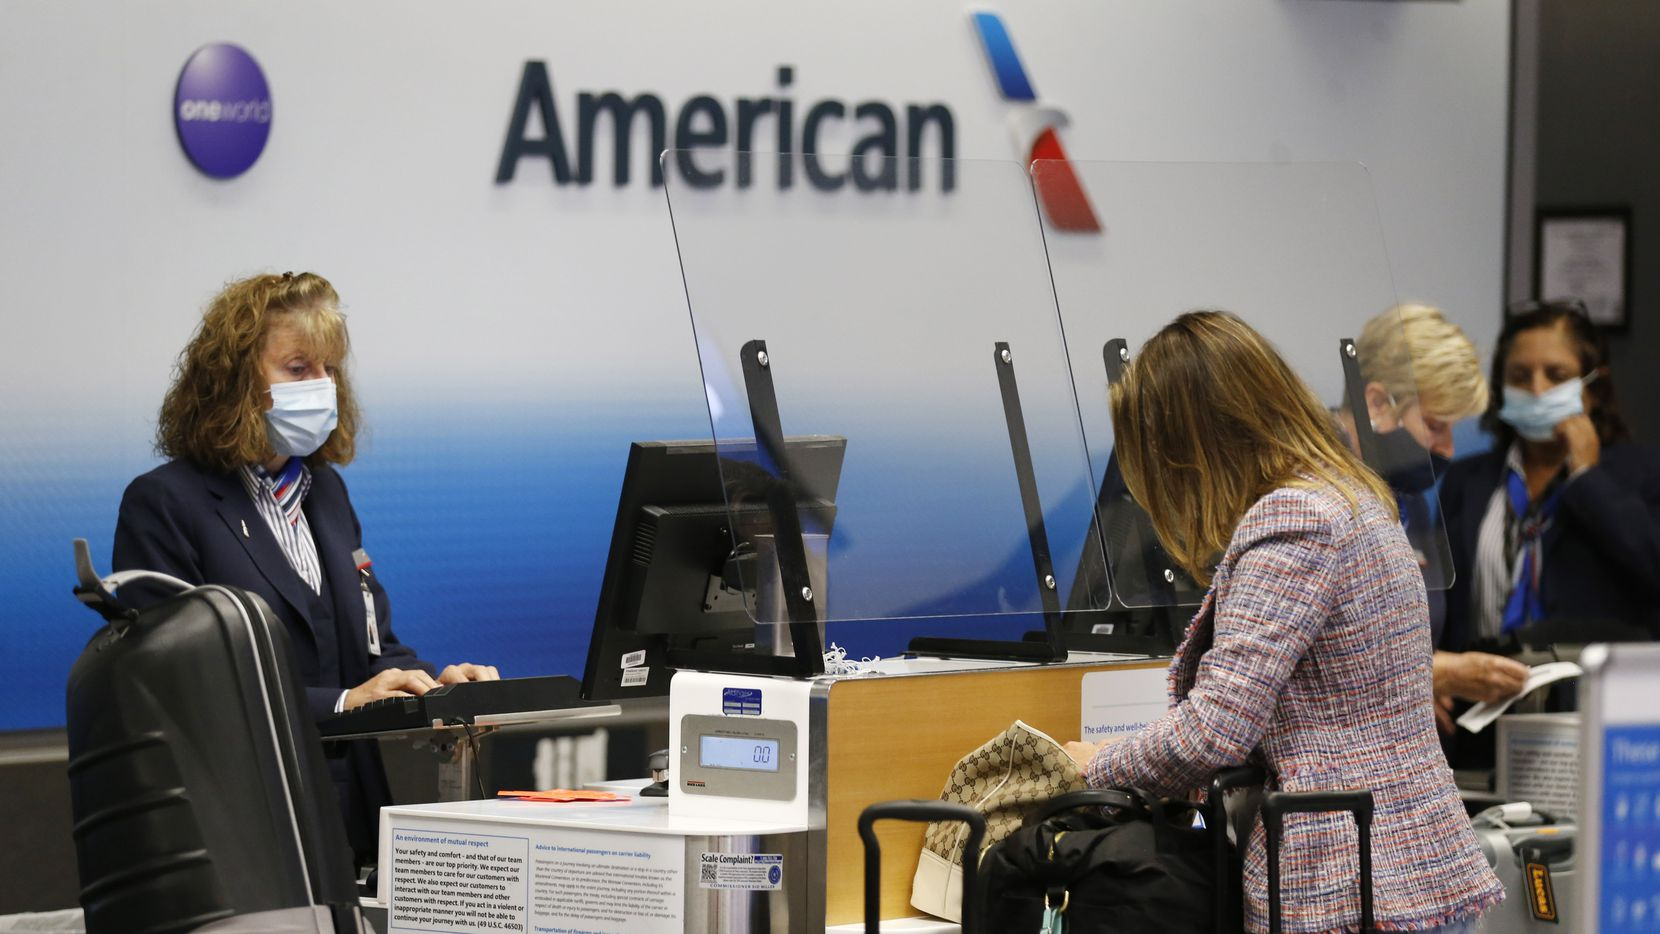 An American Airlines agent tends to customers in Terminal C at DFW International Airport on Tuesday, July 21, 2020. The pandemic has reduced the amount of travel at the airport. (Vernon Bryant/The Dallas Morning News)